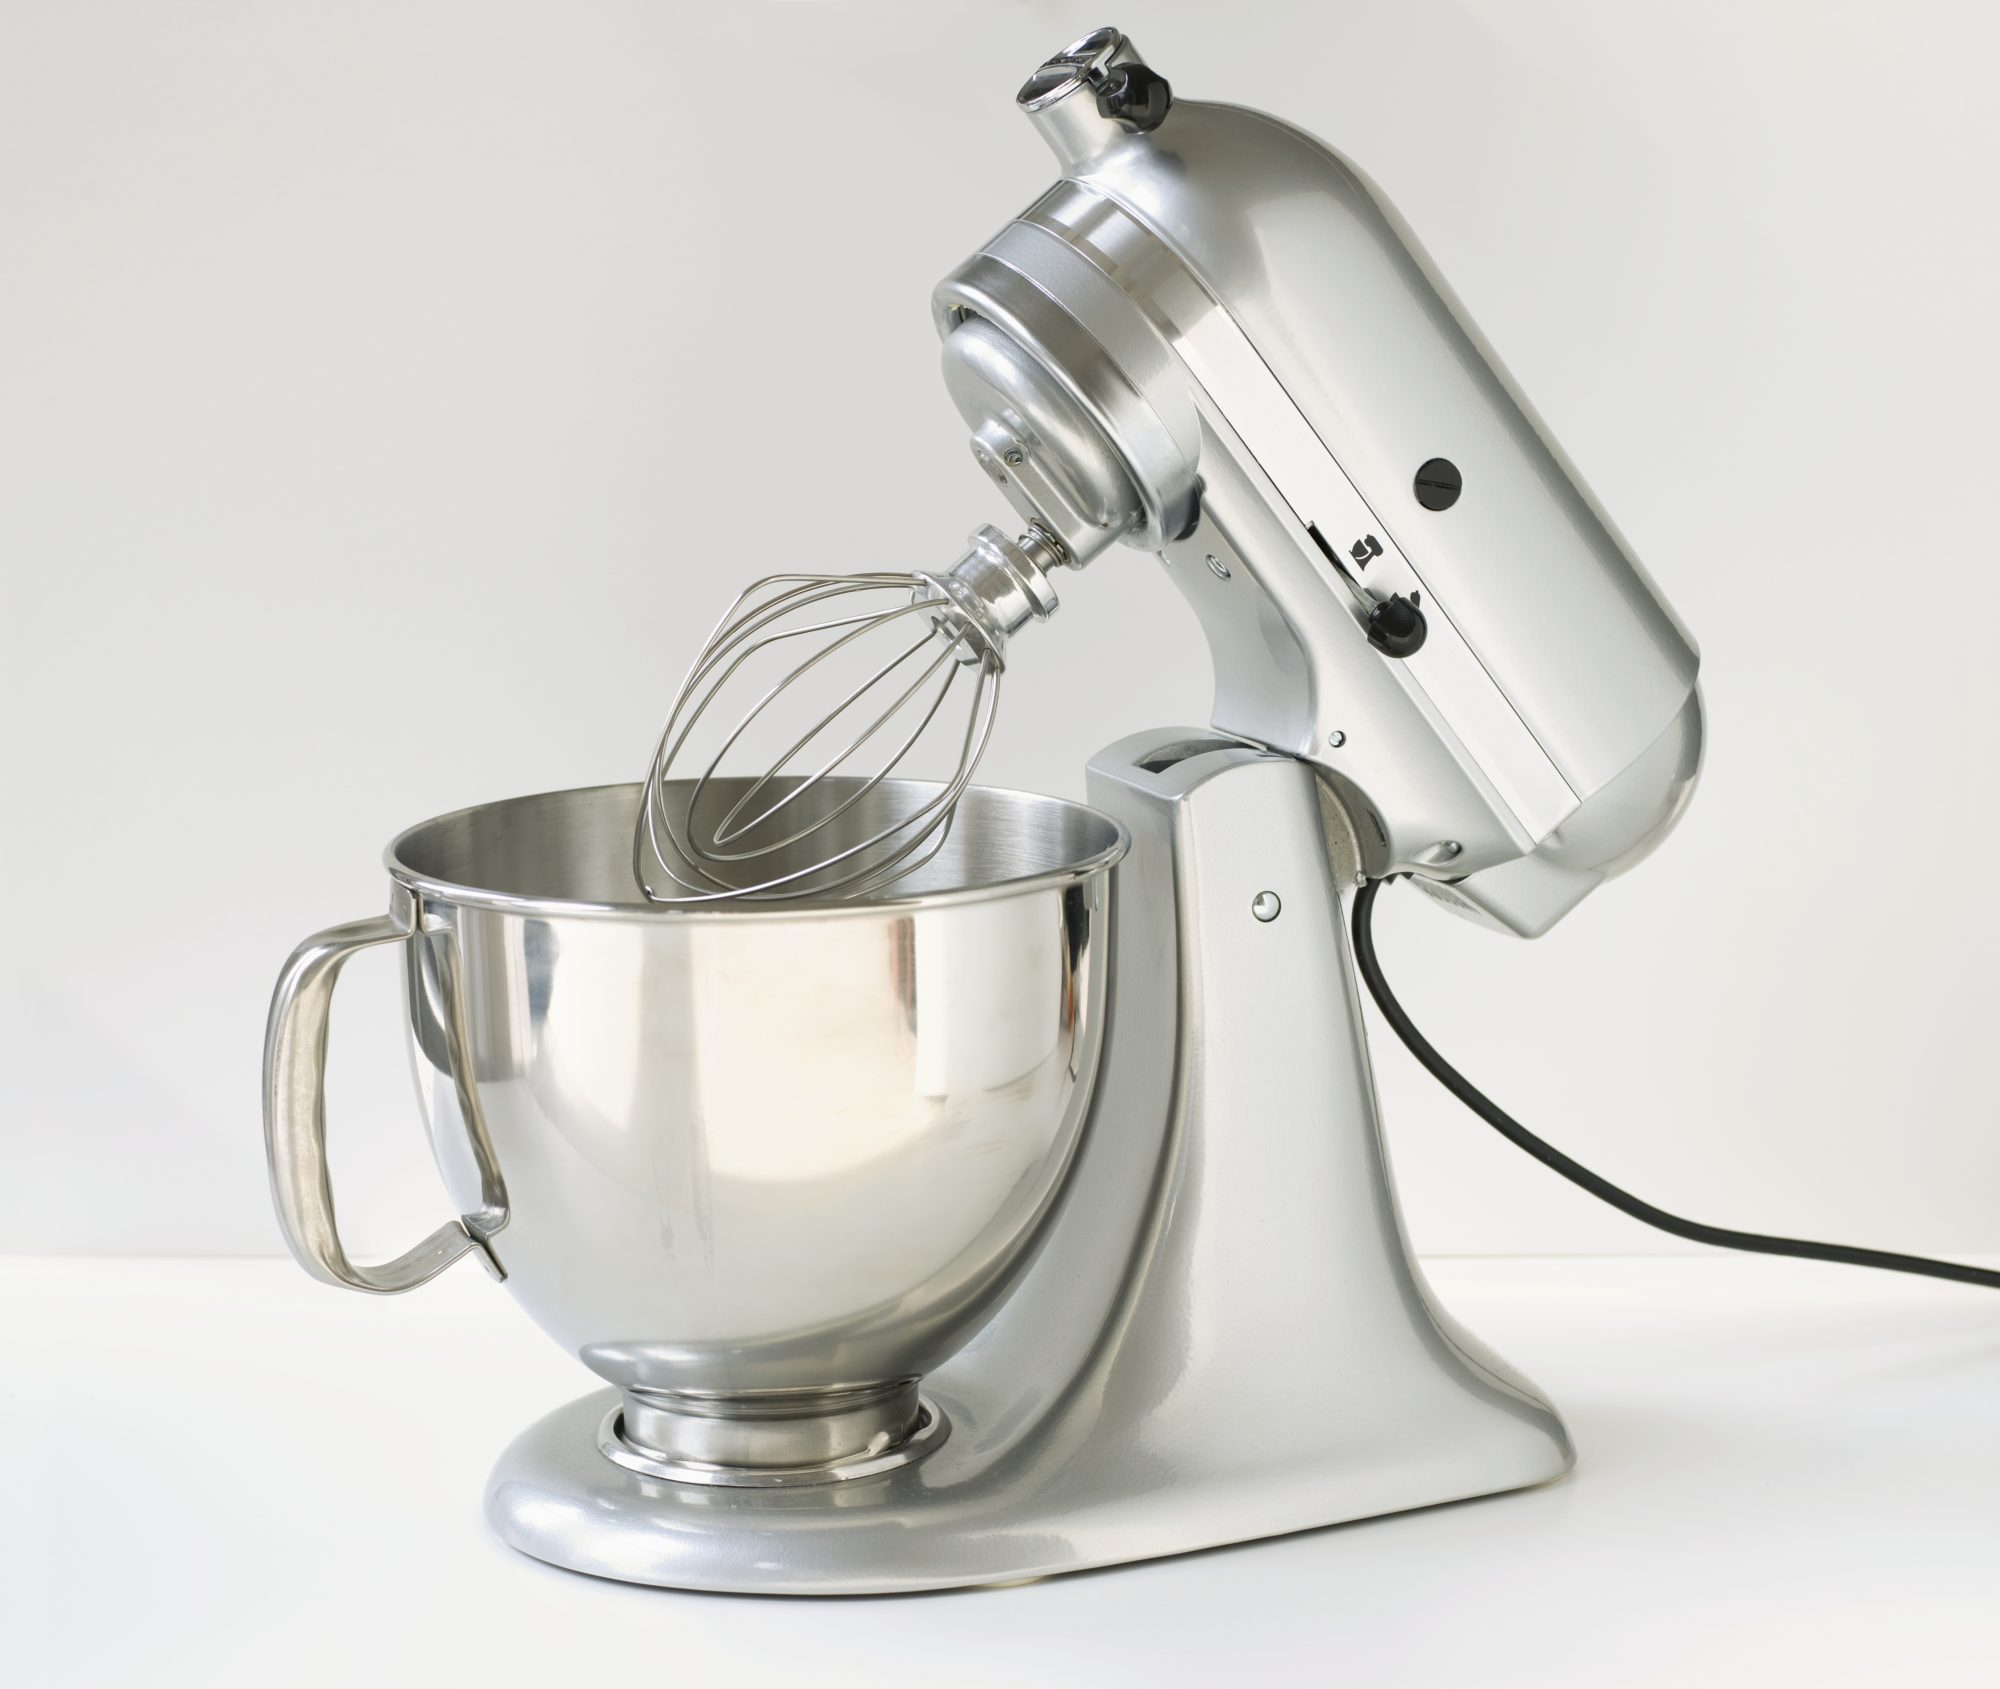 Kitchen Aid Mixer.jpg